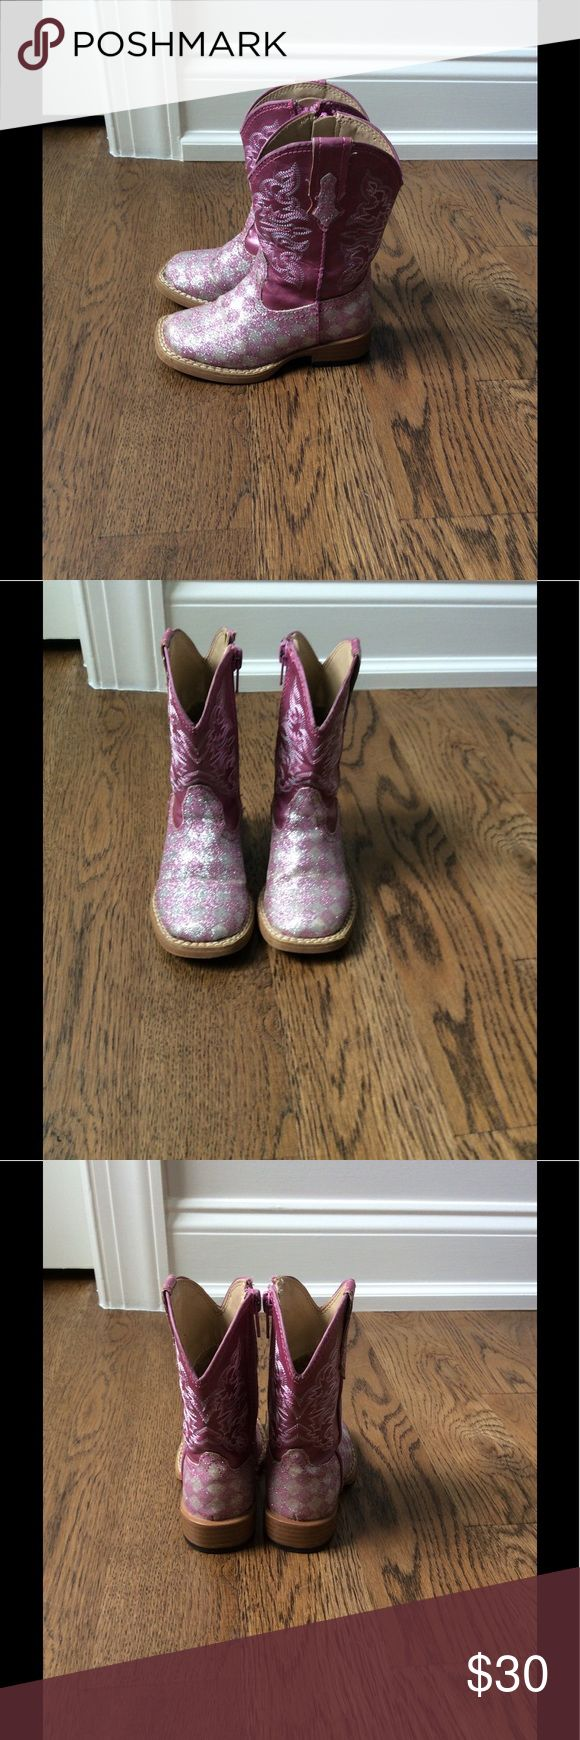 Roper Girls Sparkly Boots size 5 Girls Roper Boots size 5.  Worn a few times and in excellent used condition.  Absolutely adorable! Roper Shoes Boots